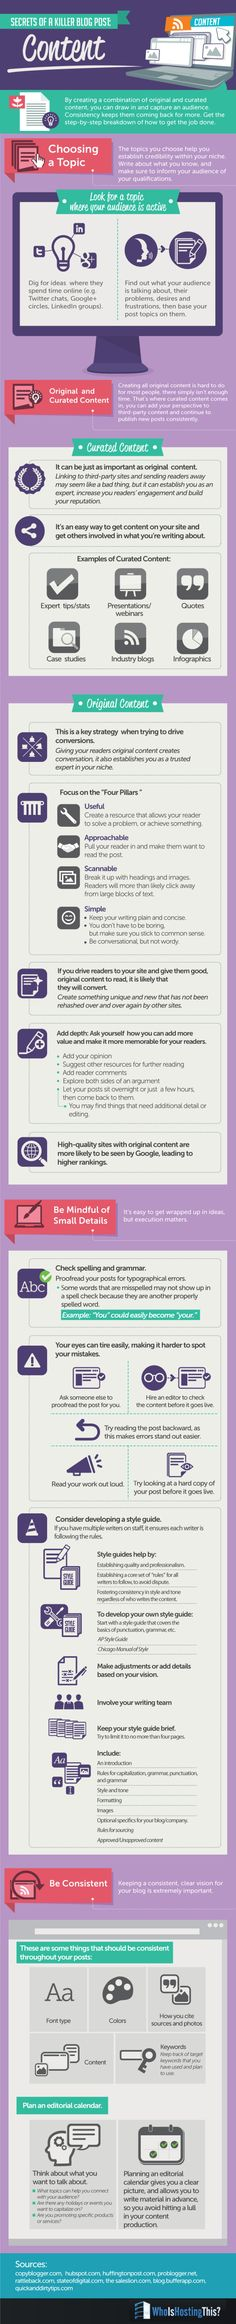 How to Write a Killer Blog Post -- Generating Remarkable Content.  A detailed infographic that outlines methods and organization for a content marketing strategy that works.  Useful for bloggers, business owners, entrepreneurs, and anyone who is trying to increase brand exposure using a blog.